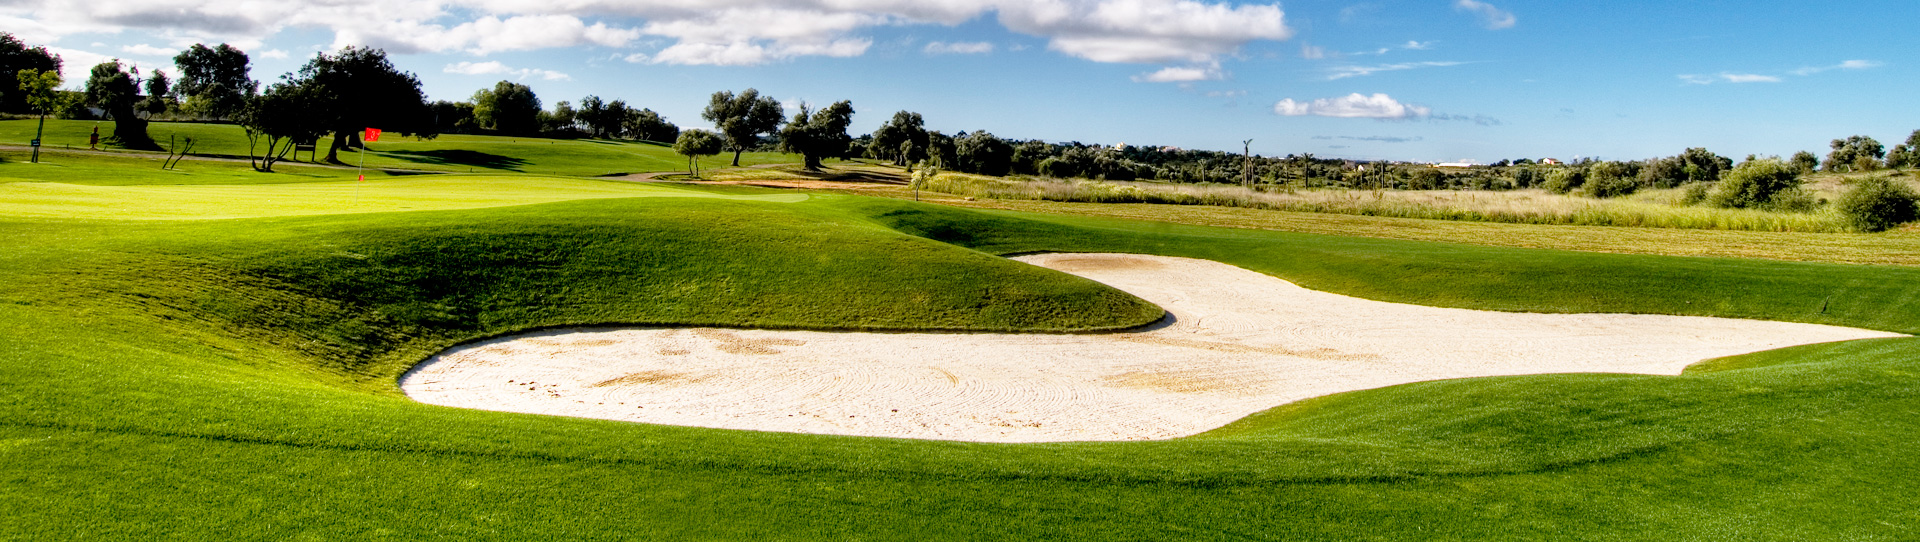 Silves Golf Course - Photo 1